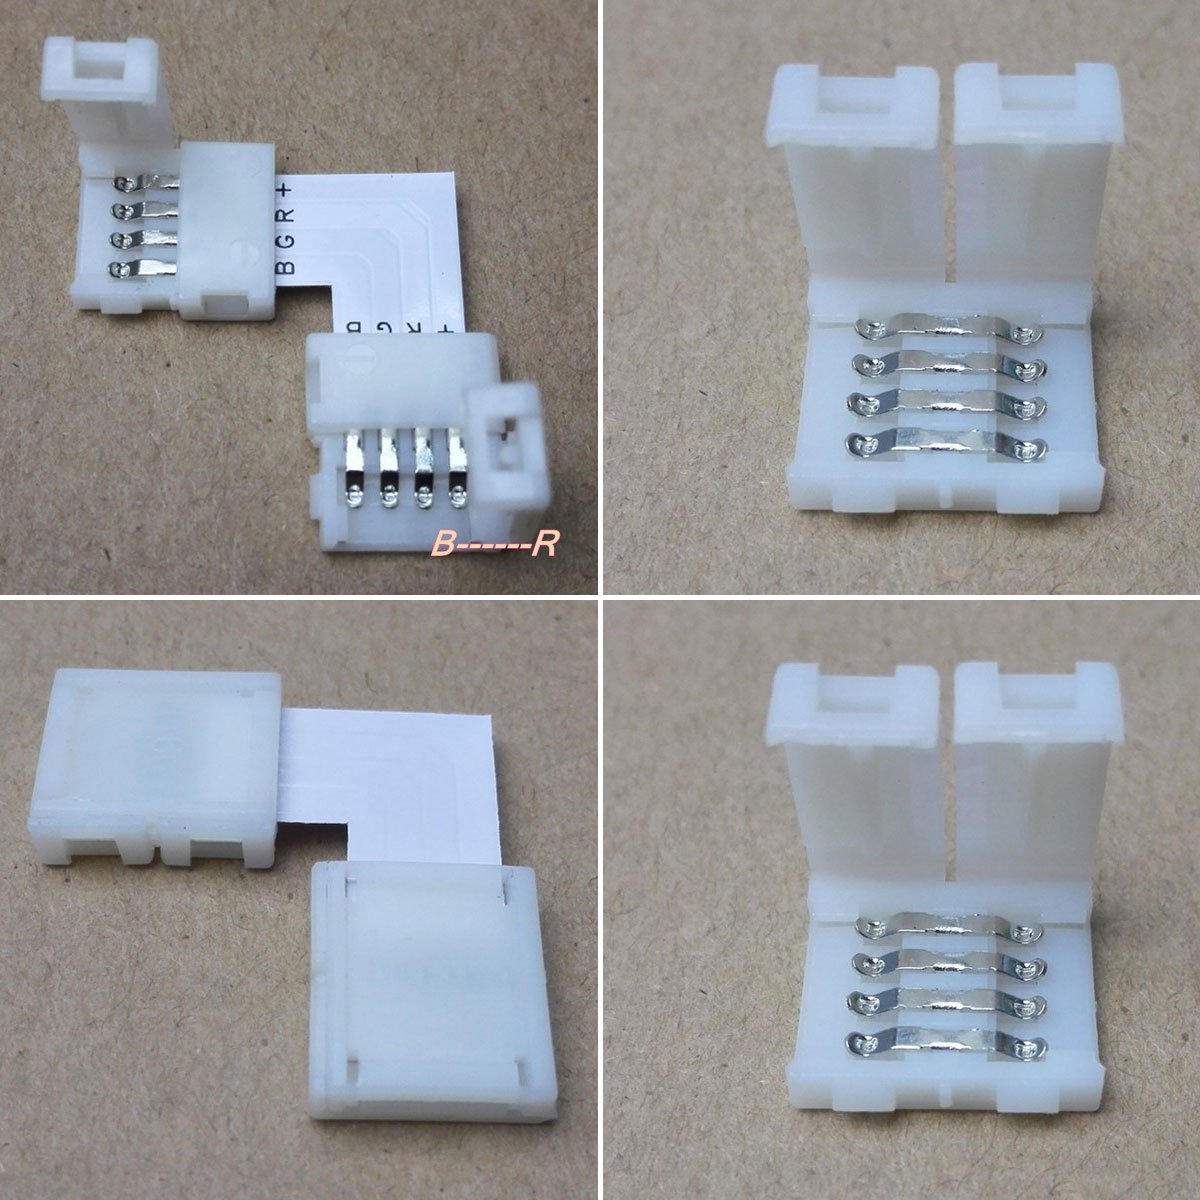 Freebily 20pcs 4 Pin Rgb Led Light Strip Connector Pbc 10mm To Wireclip For Wiring Strips Photo Solderless Smd 5050 Multicolor